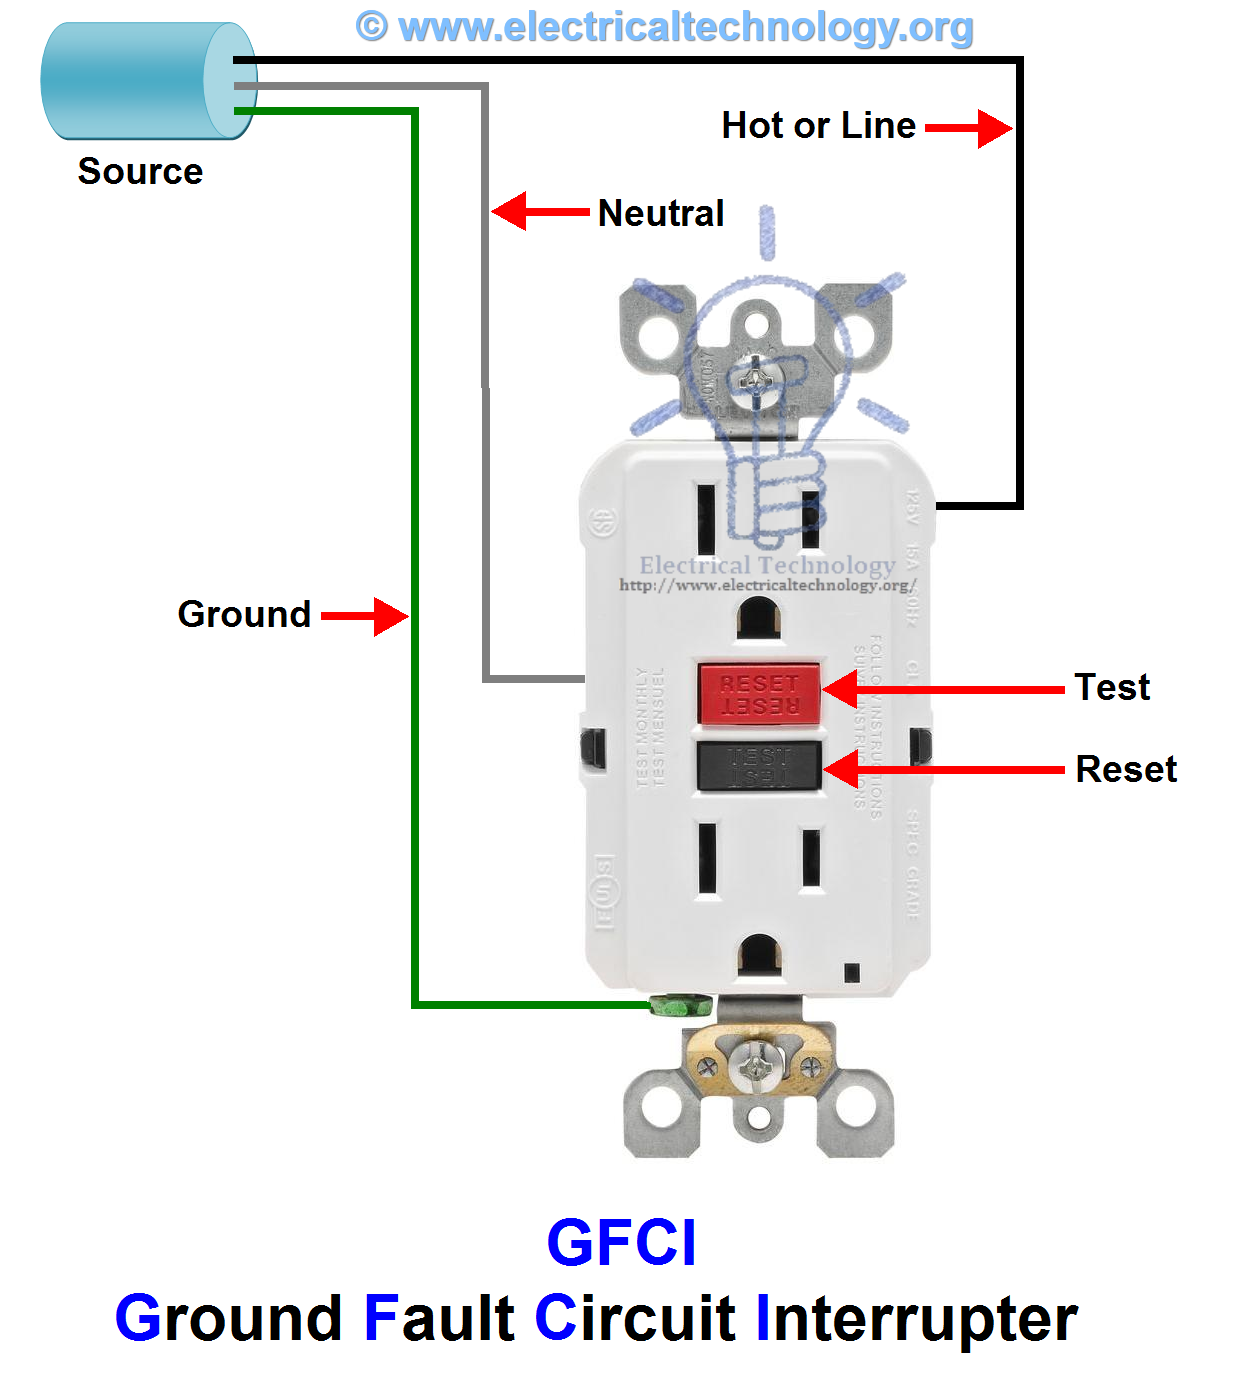 Gfci ground fault circuit interrupter types working gfci ground fault circuit interrupter types working sciox Image collections